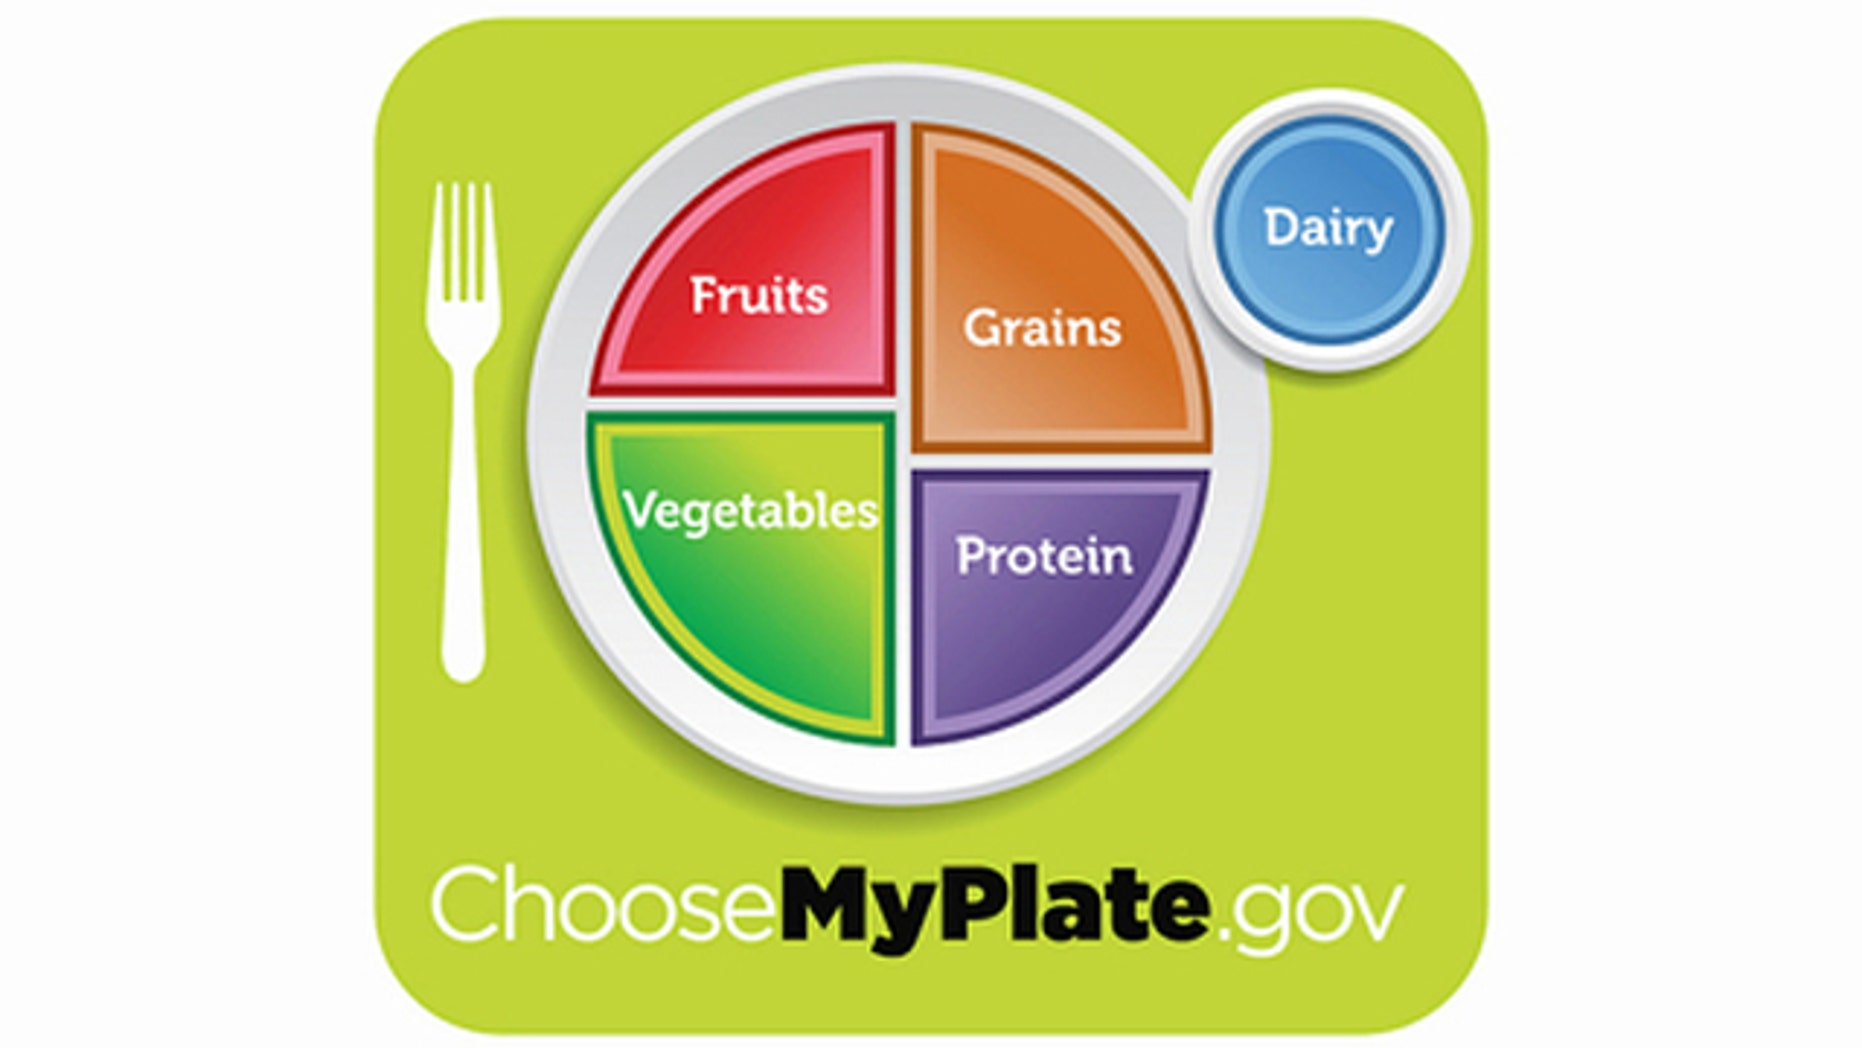 USDA unveils the new food icon, MyPlate, to replace the food pyramid that served as the standard for dietary guidelines for nearly 20 years.